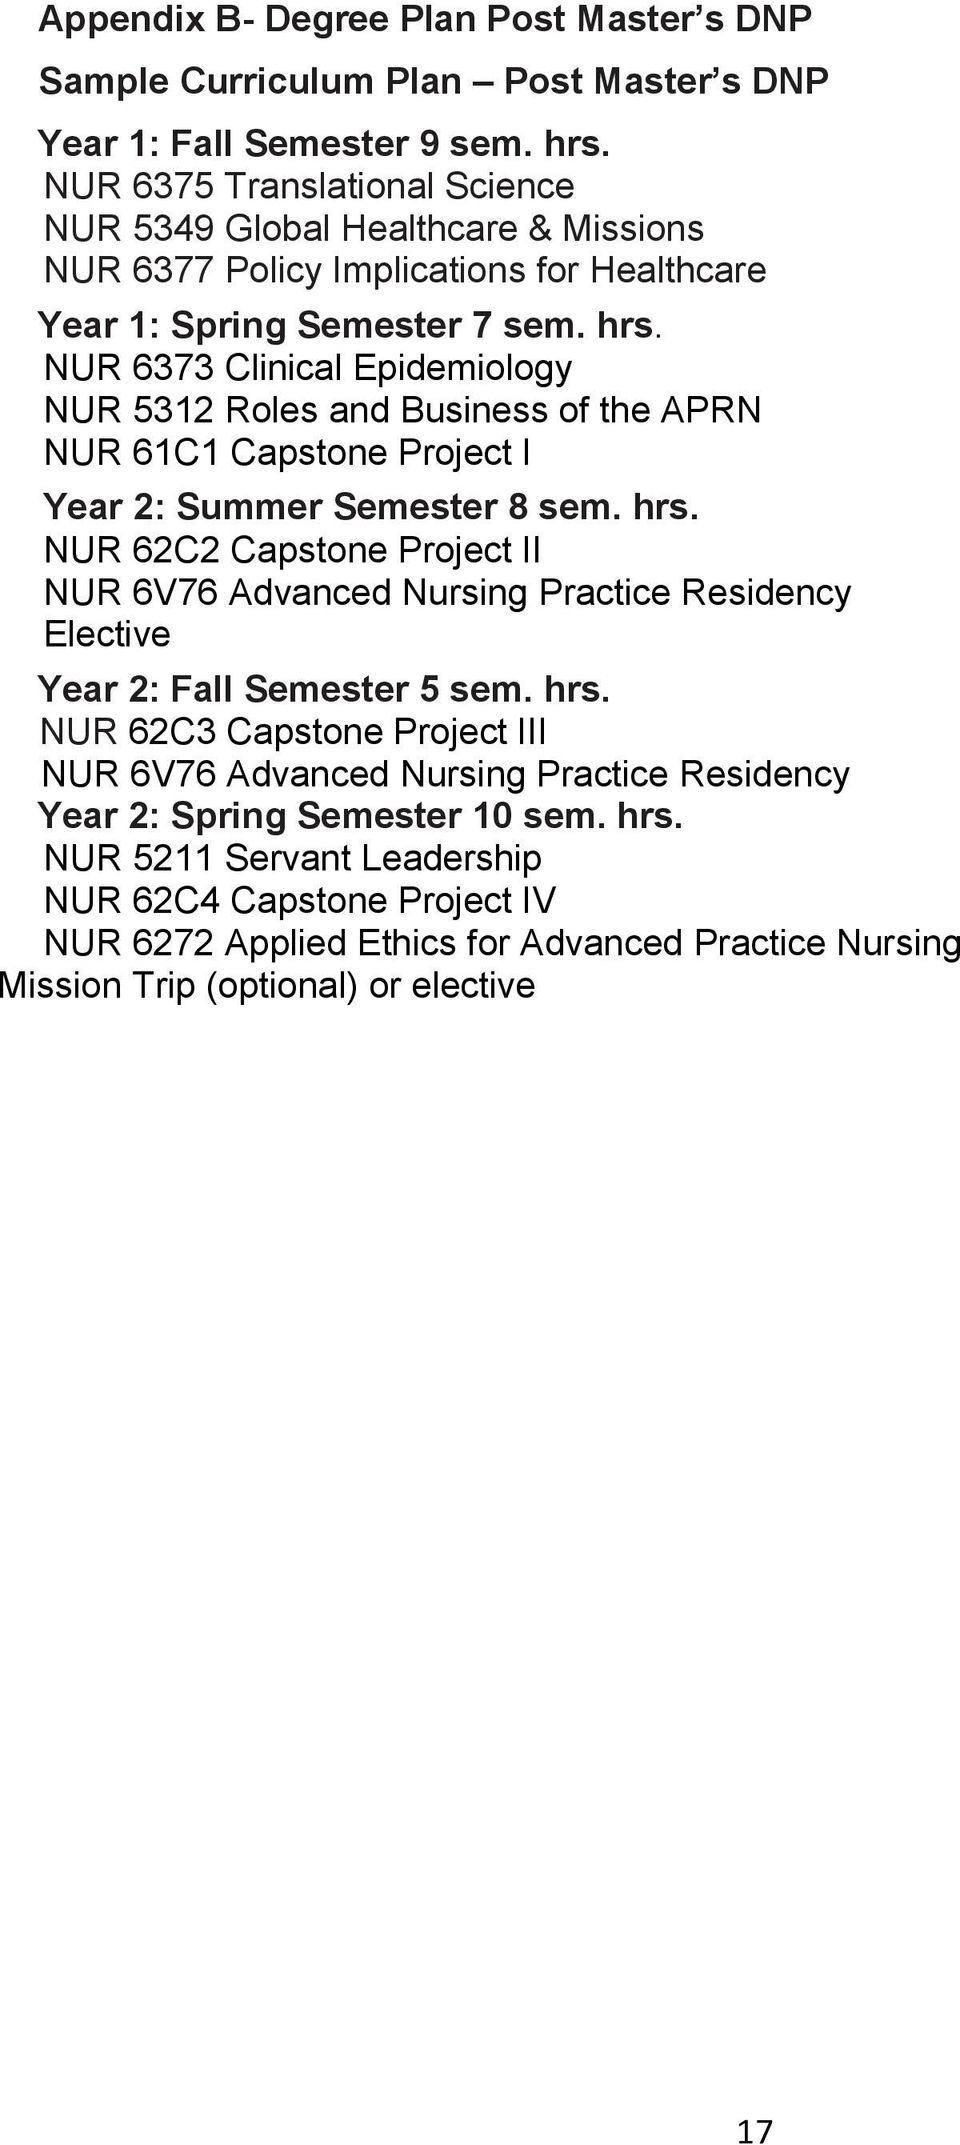 NUR 6373 Clinical Epidemiology NUR 5312 Roles and Business of the APRN NUR 61C1 Capstone Project I Year 2: Summer Semester 8 sem. hrs.